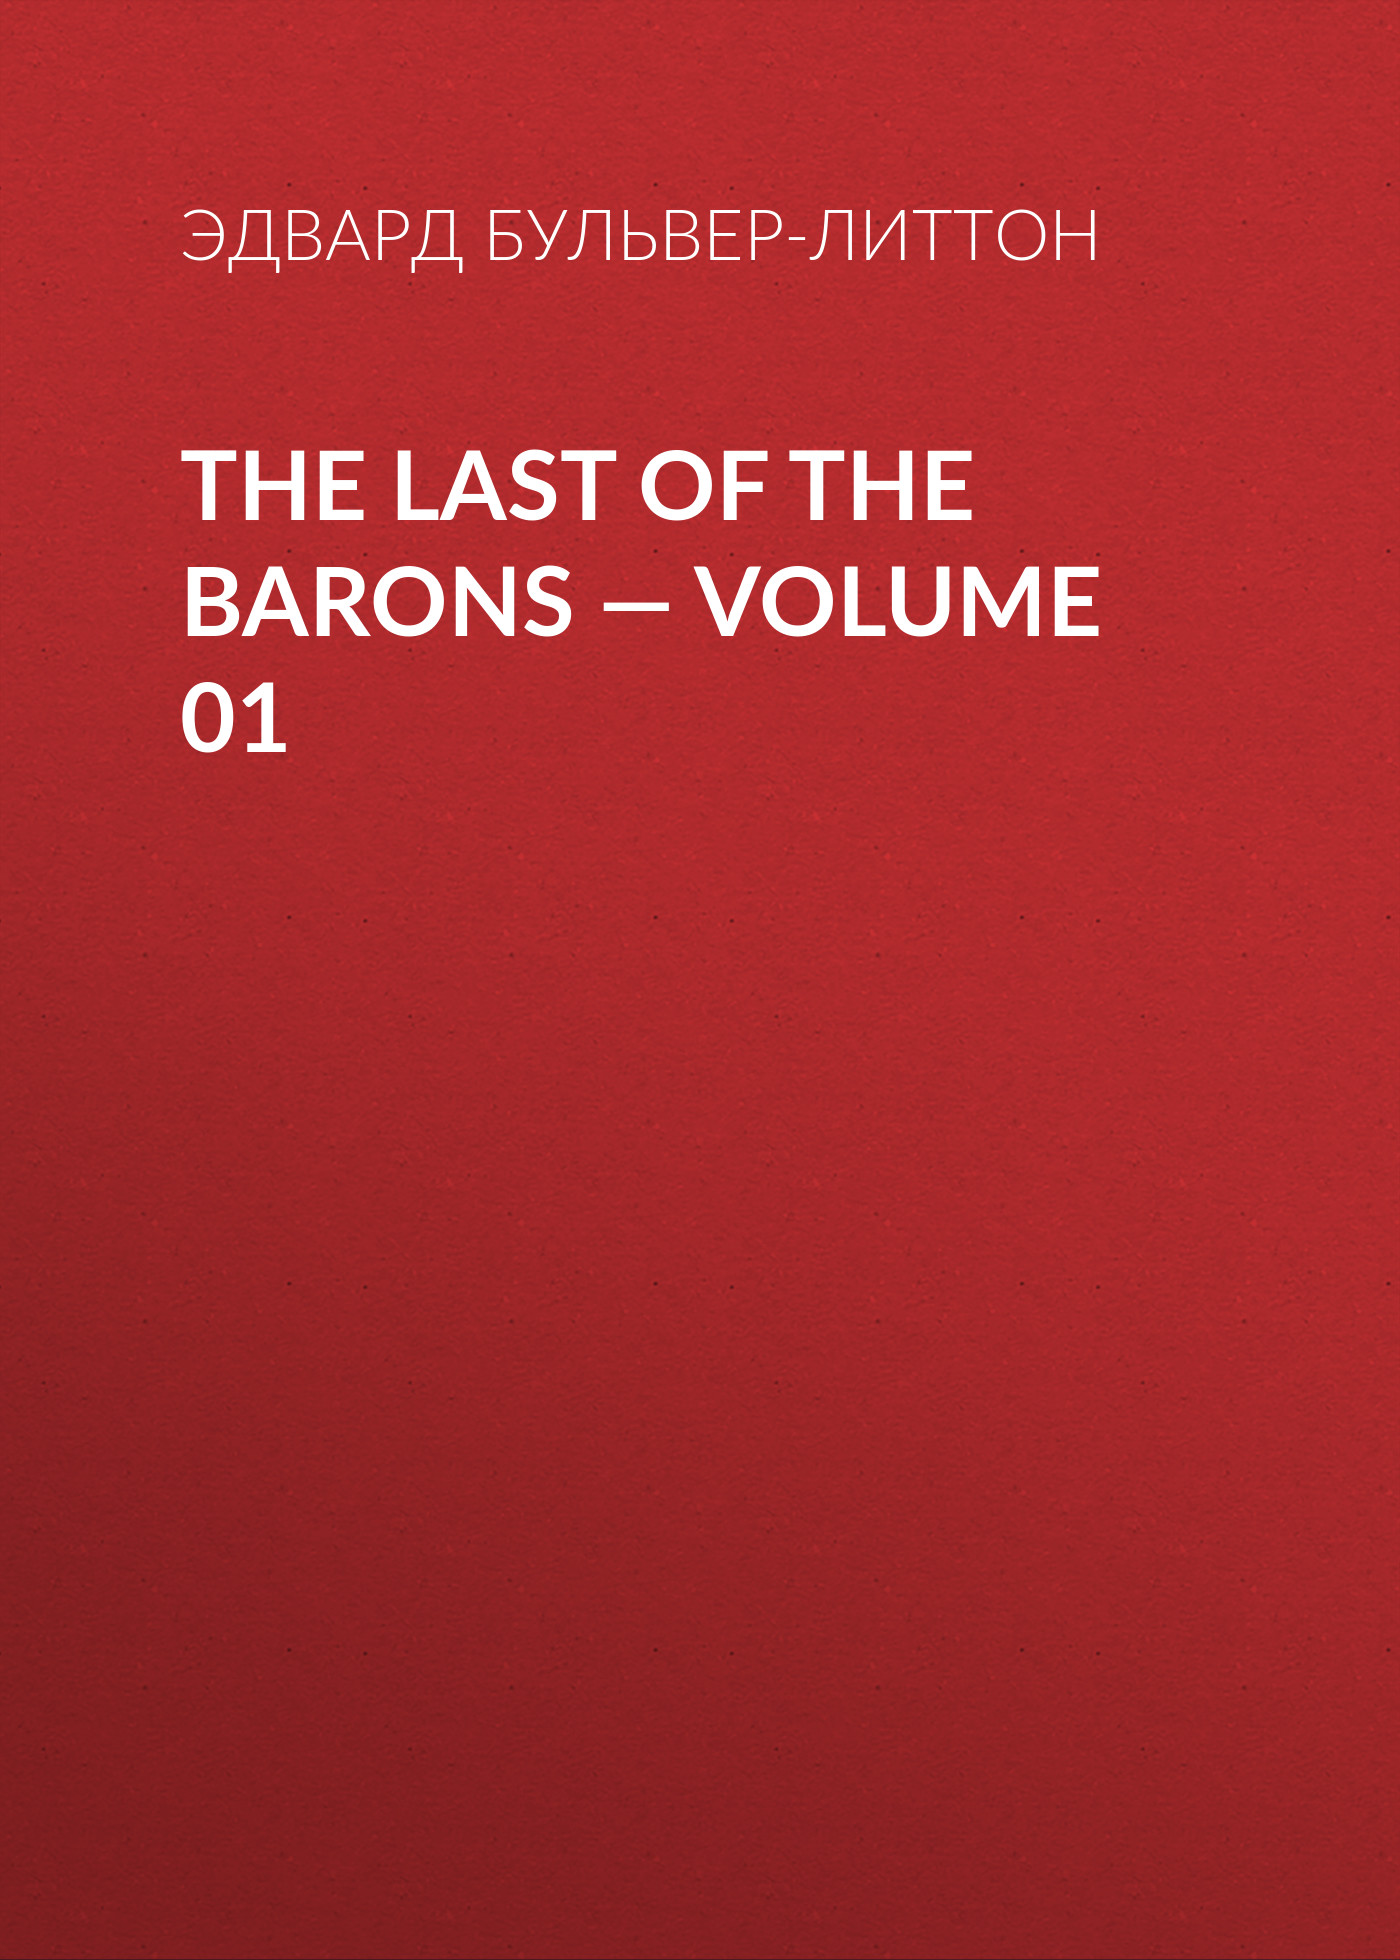 Эдвард Бульвер-Литтон The Last of the Barons — Volume 01 эдвард бульвер литтон harold the last of the saxon kings volume 06